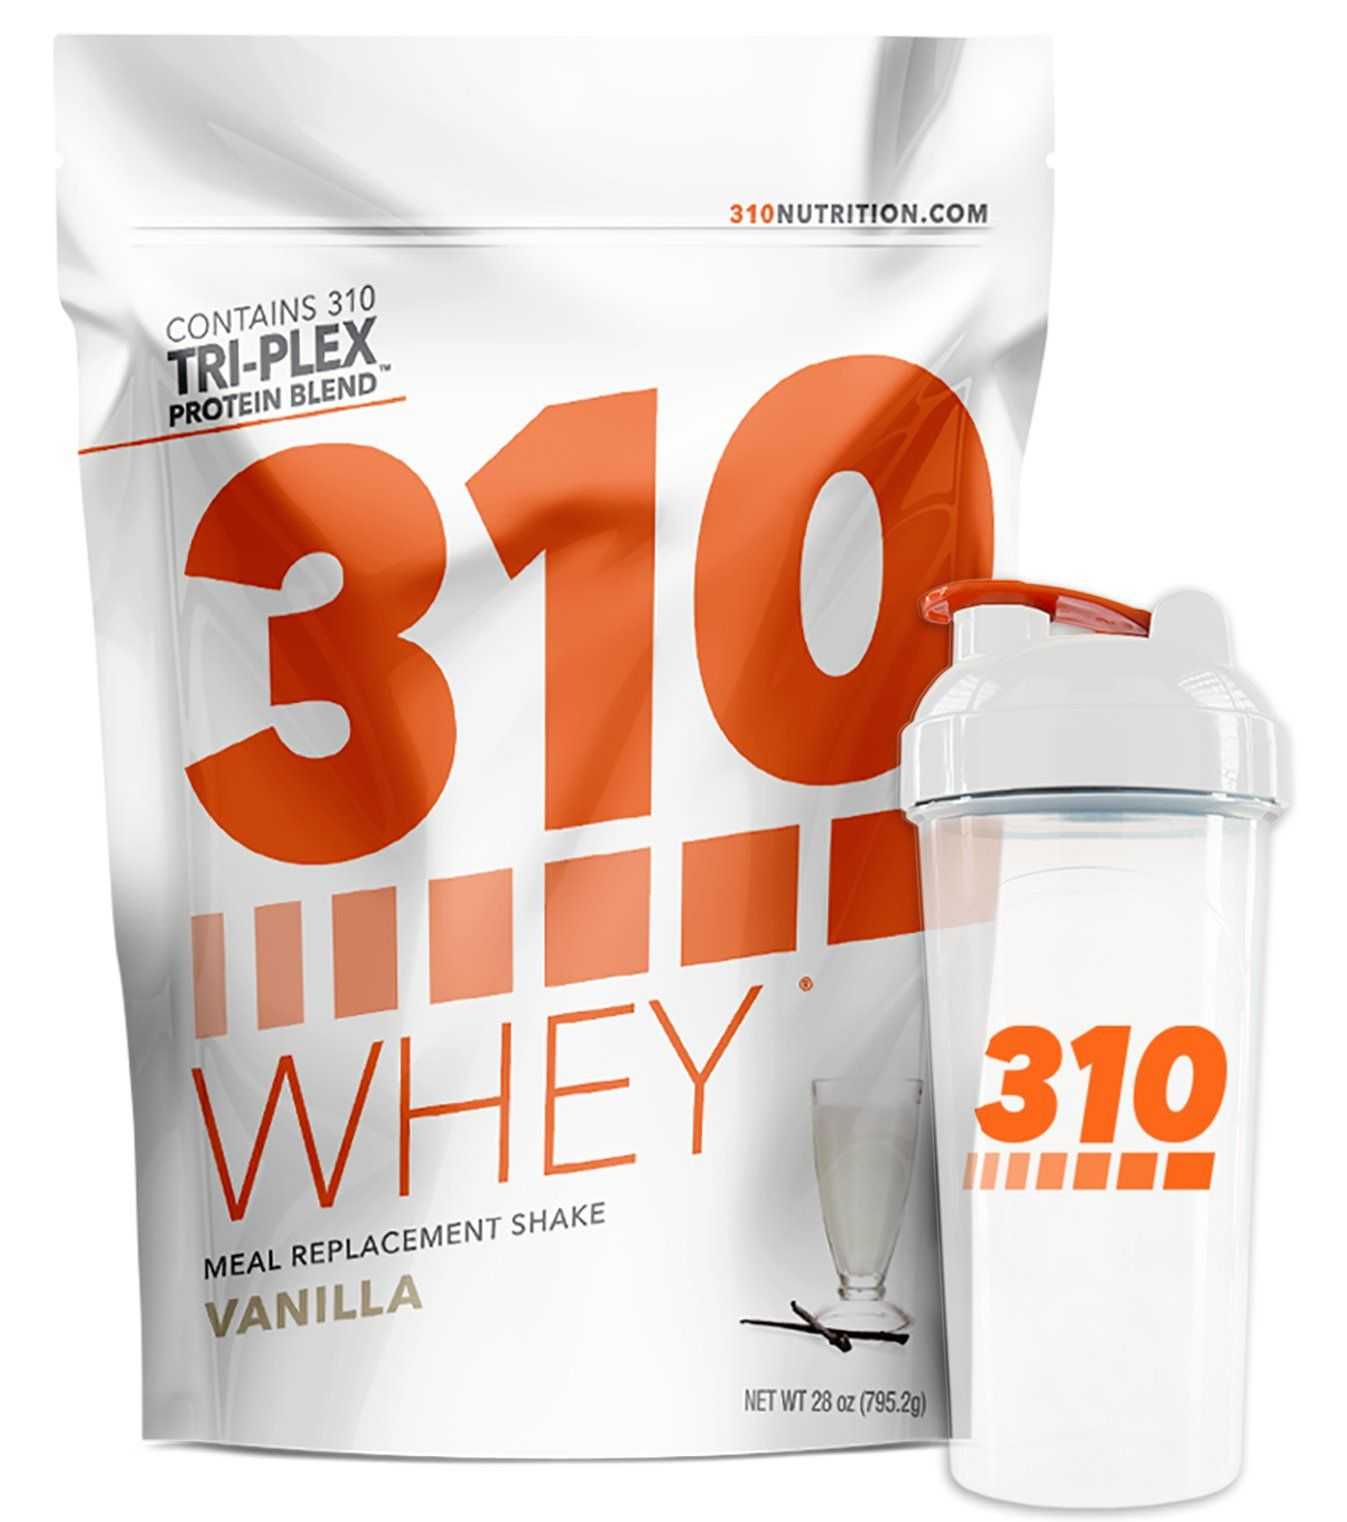 Vanilla Meal Replacement and 310 Shaker 310 Shake Whey